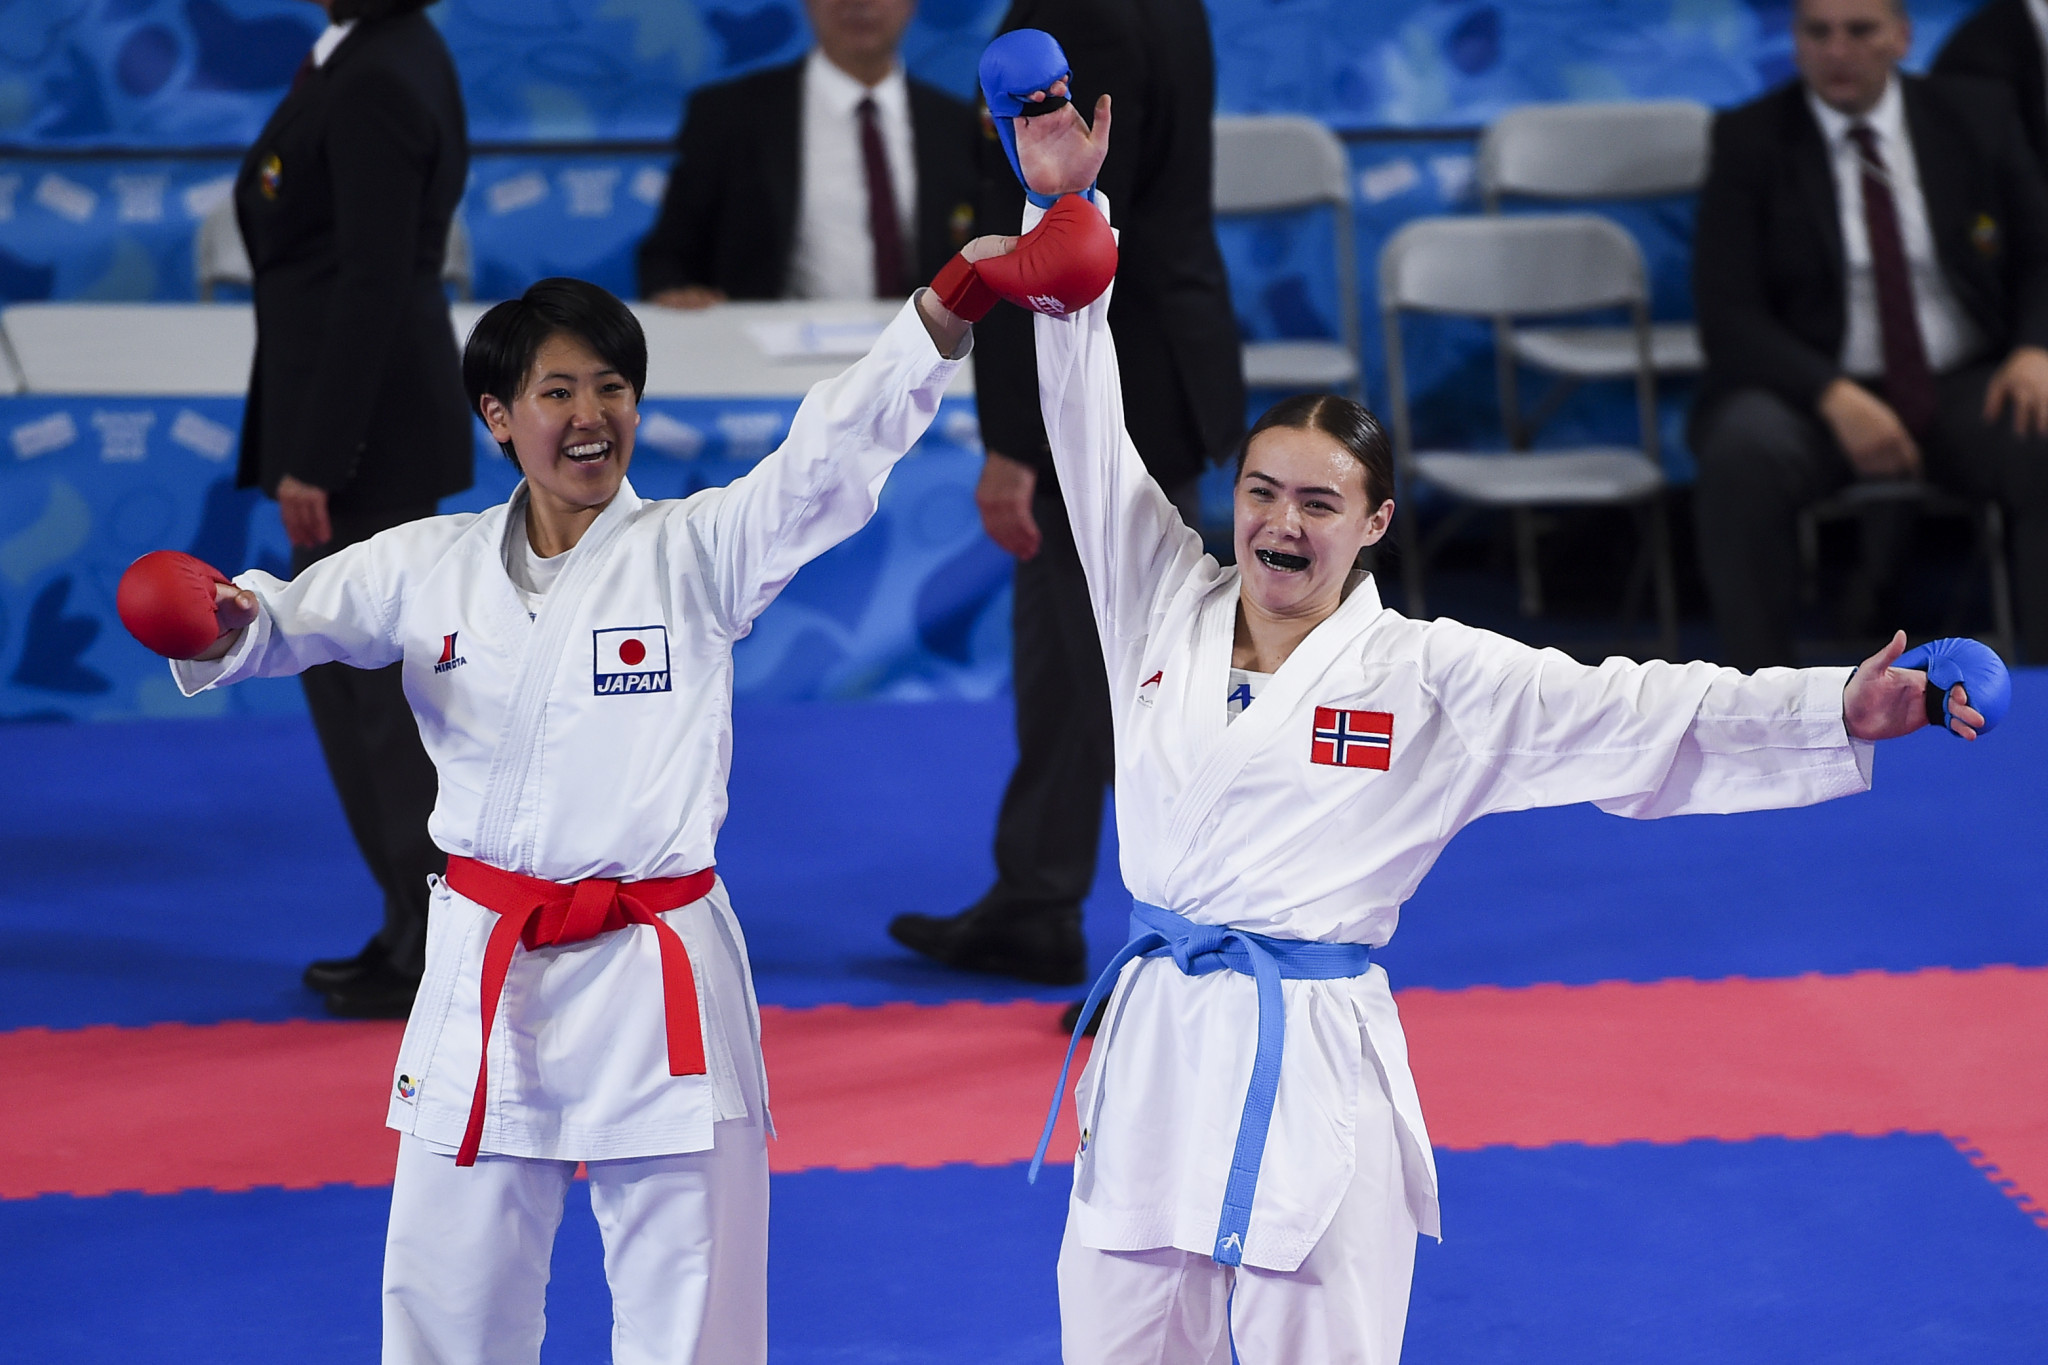 Three karate titles were claimed on the final day of competition ©Getty Images